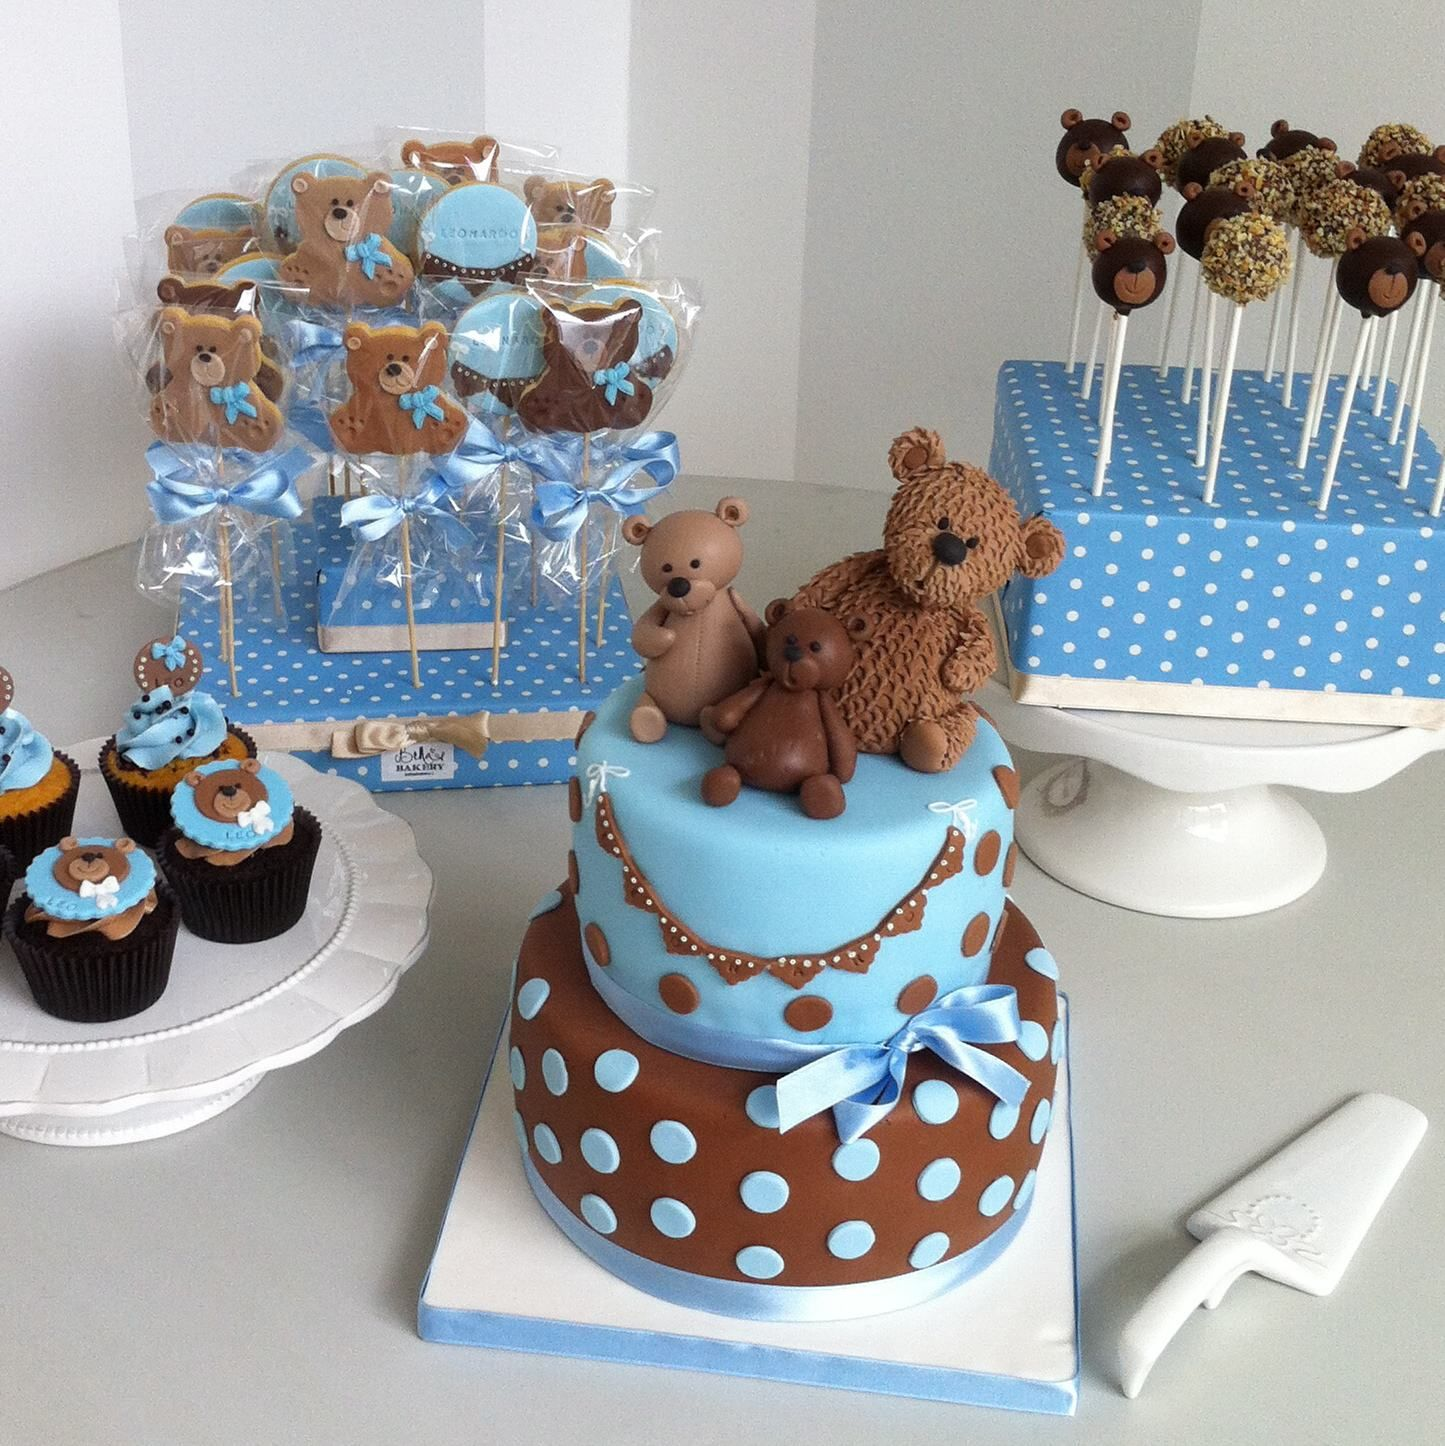 Teddy Bear Blue White And Greysilver With The Milkaholic Theme